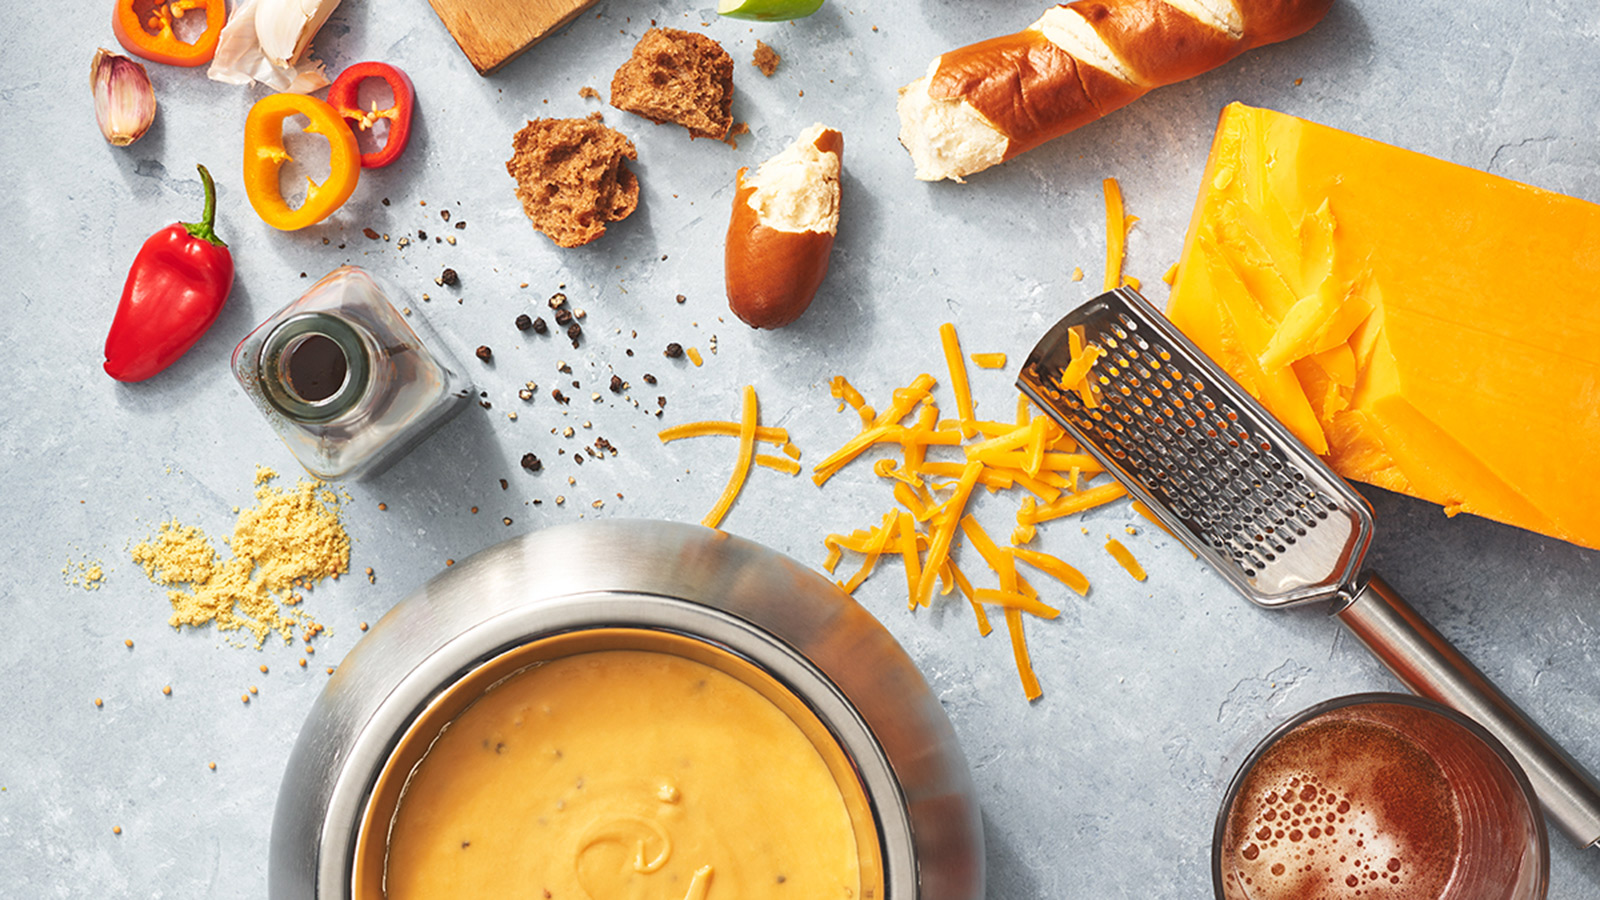 Cheddar Cheese Fondue Ingredients